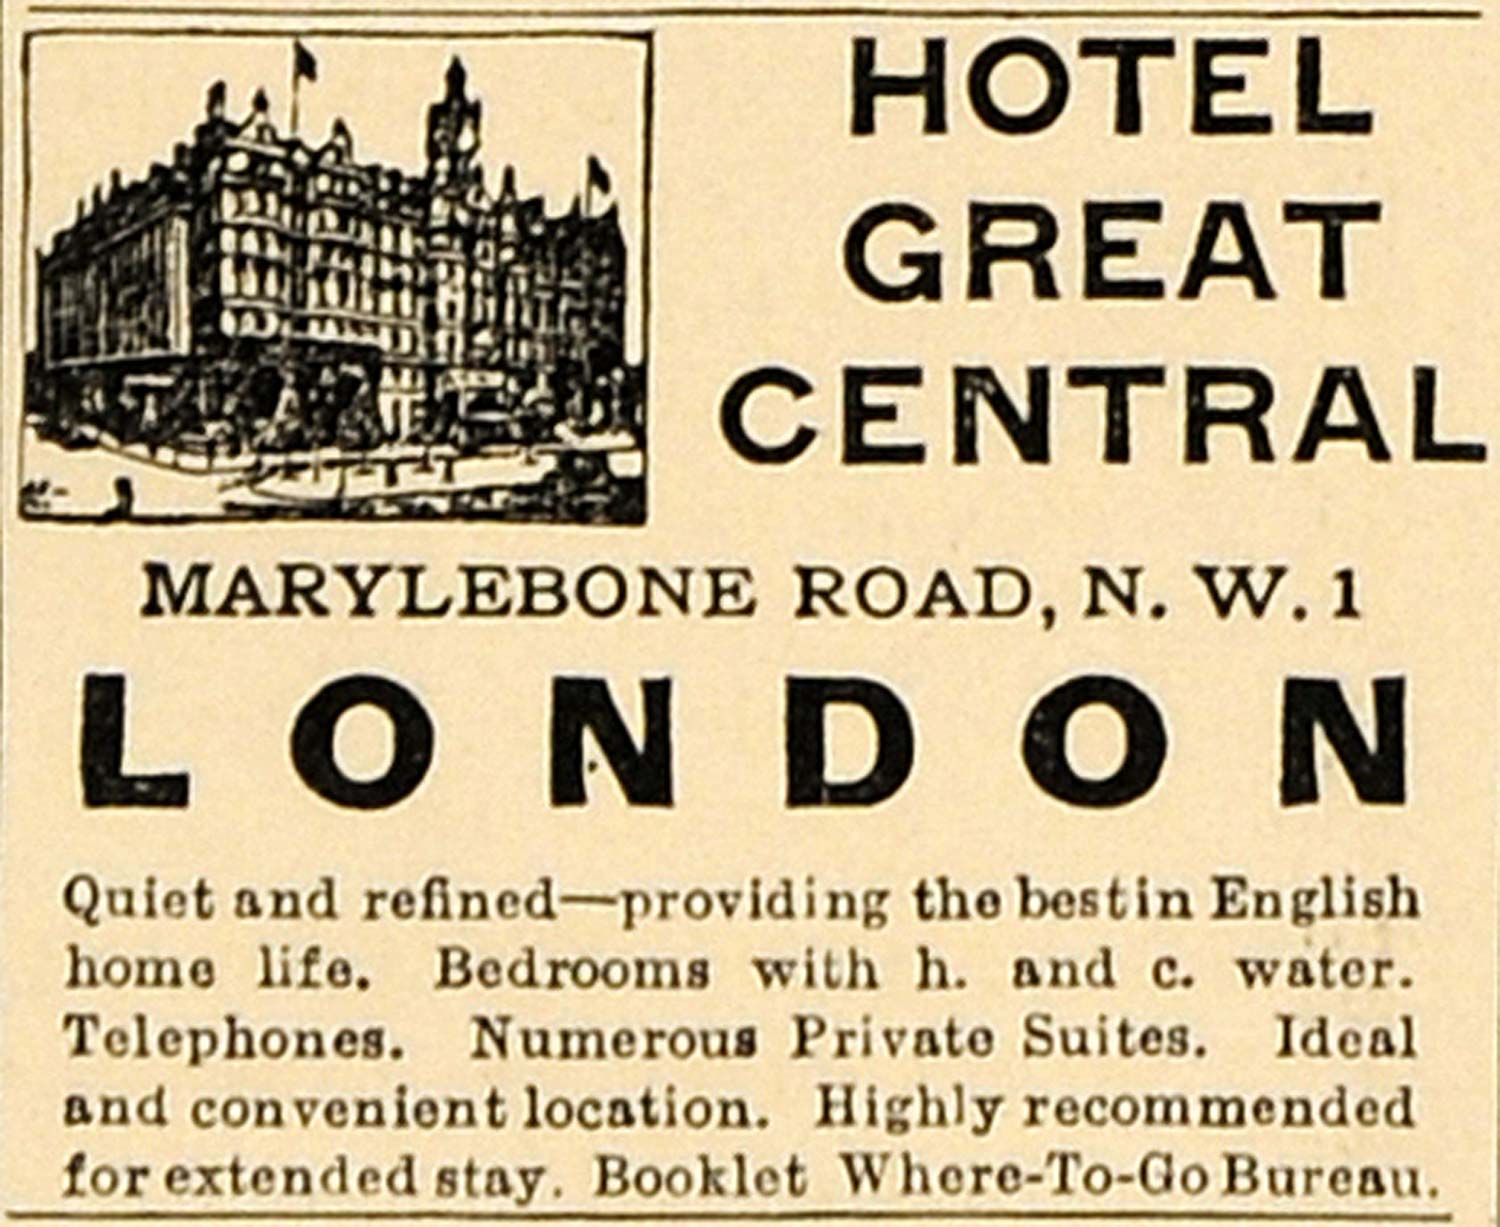 1930 Ad Hotel Great Central London Marylebone Road Home - ORIGINAL WW3